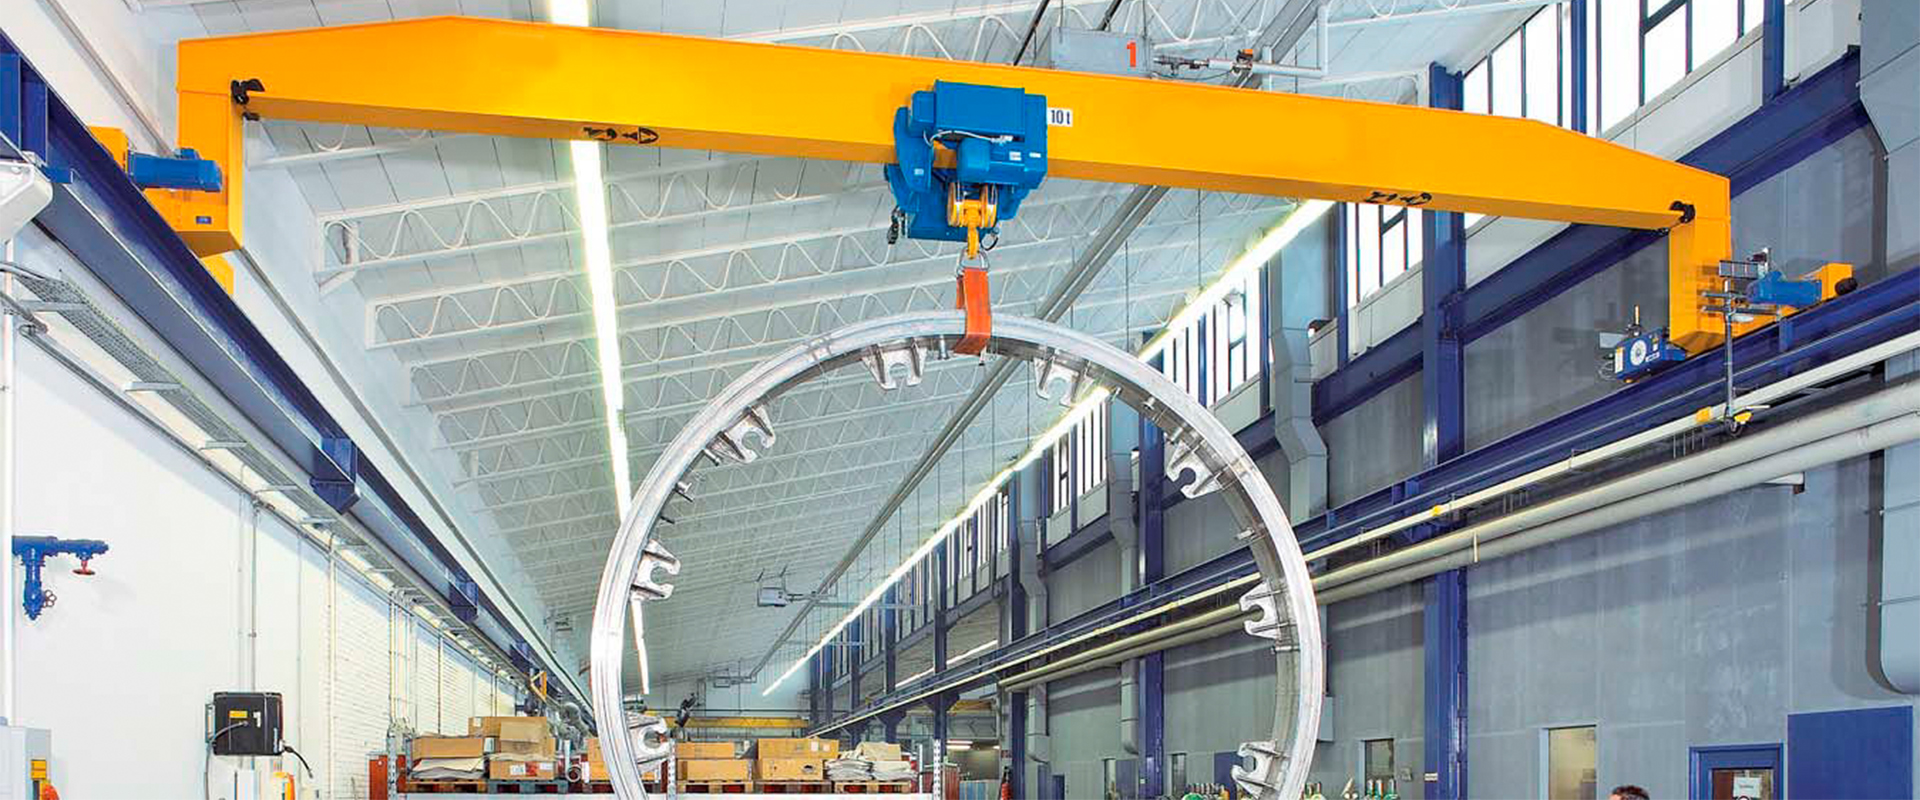 Overhead Cranes Pakistan : Overhead cranes pakistan elevator lifting and access